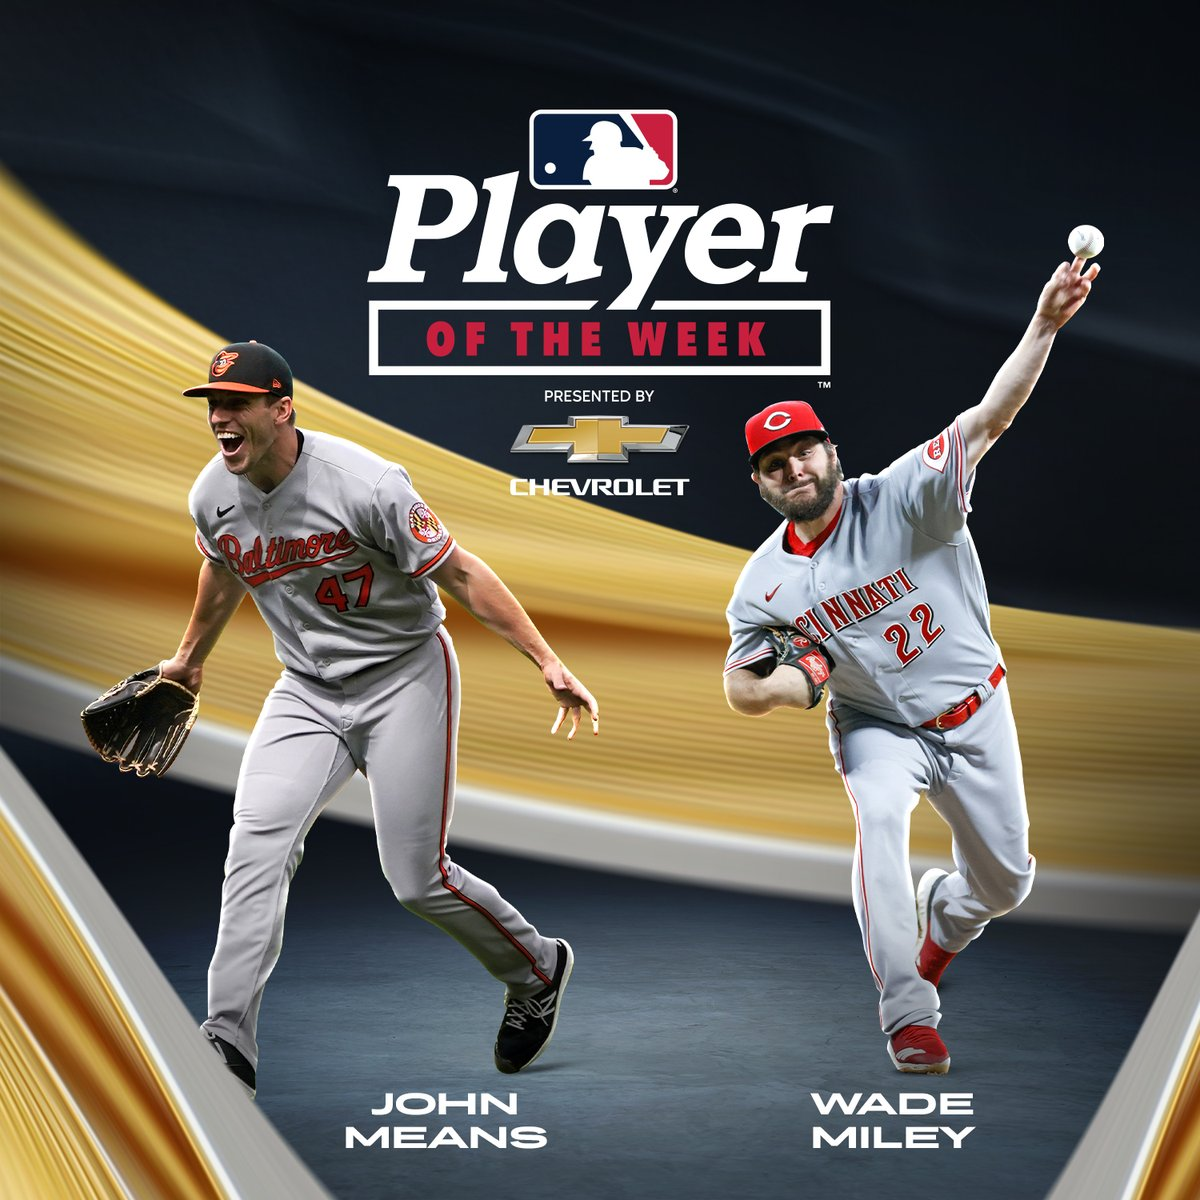 @MLB's photo on Player of the Week